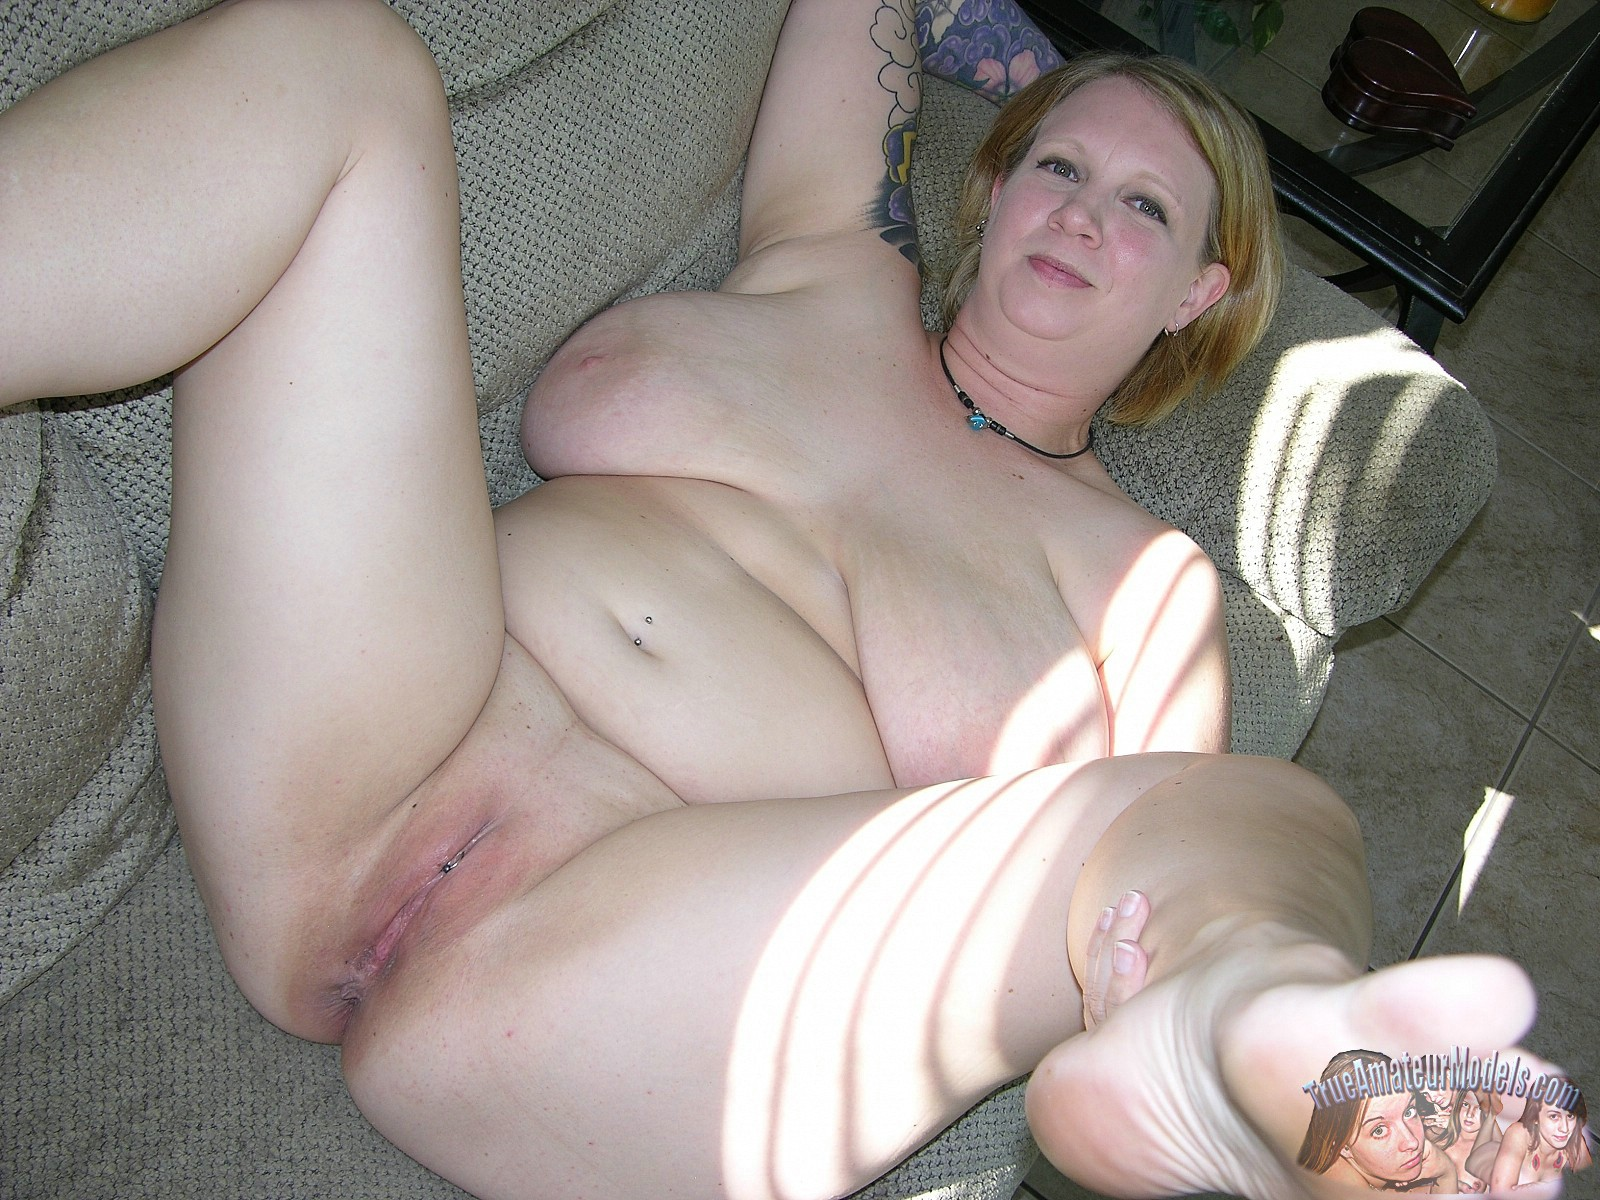 She great blonde chubby mature spread was her perfect